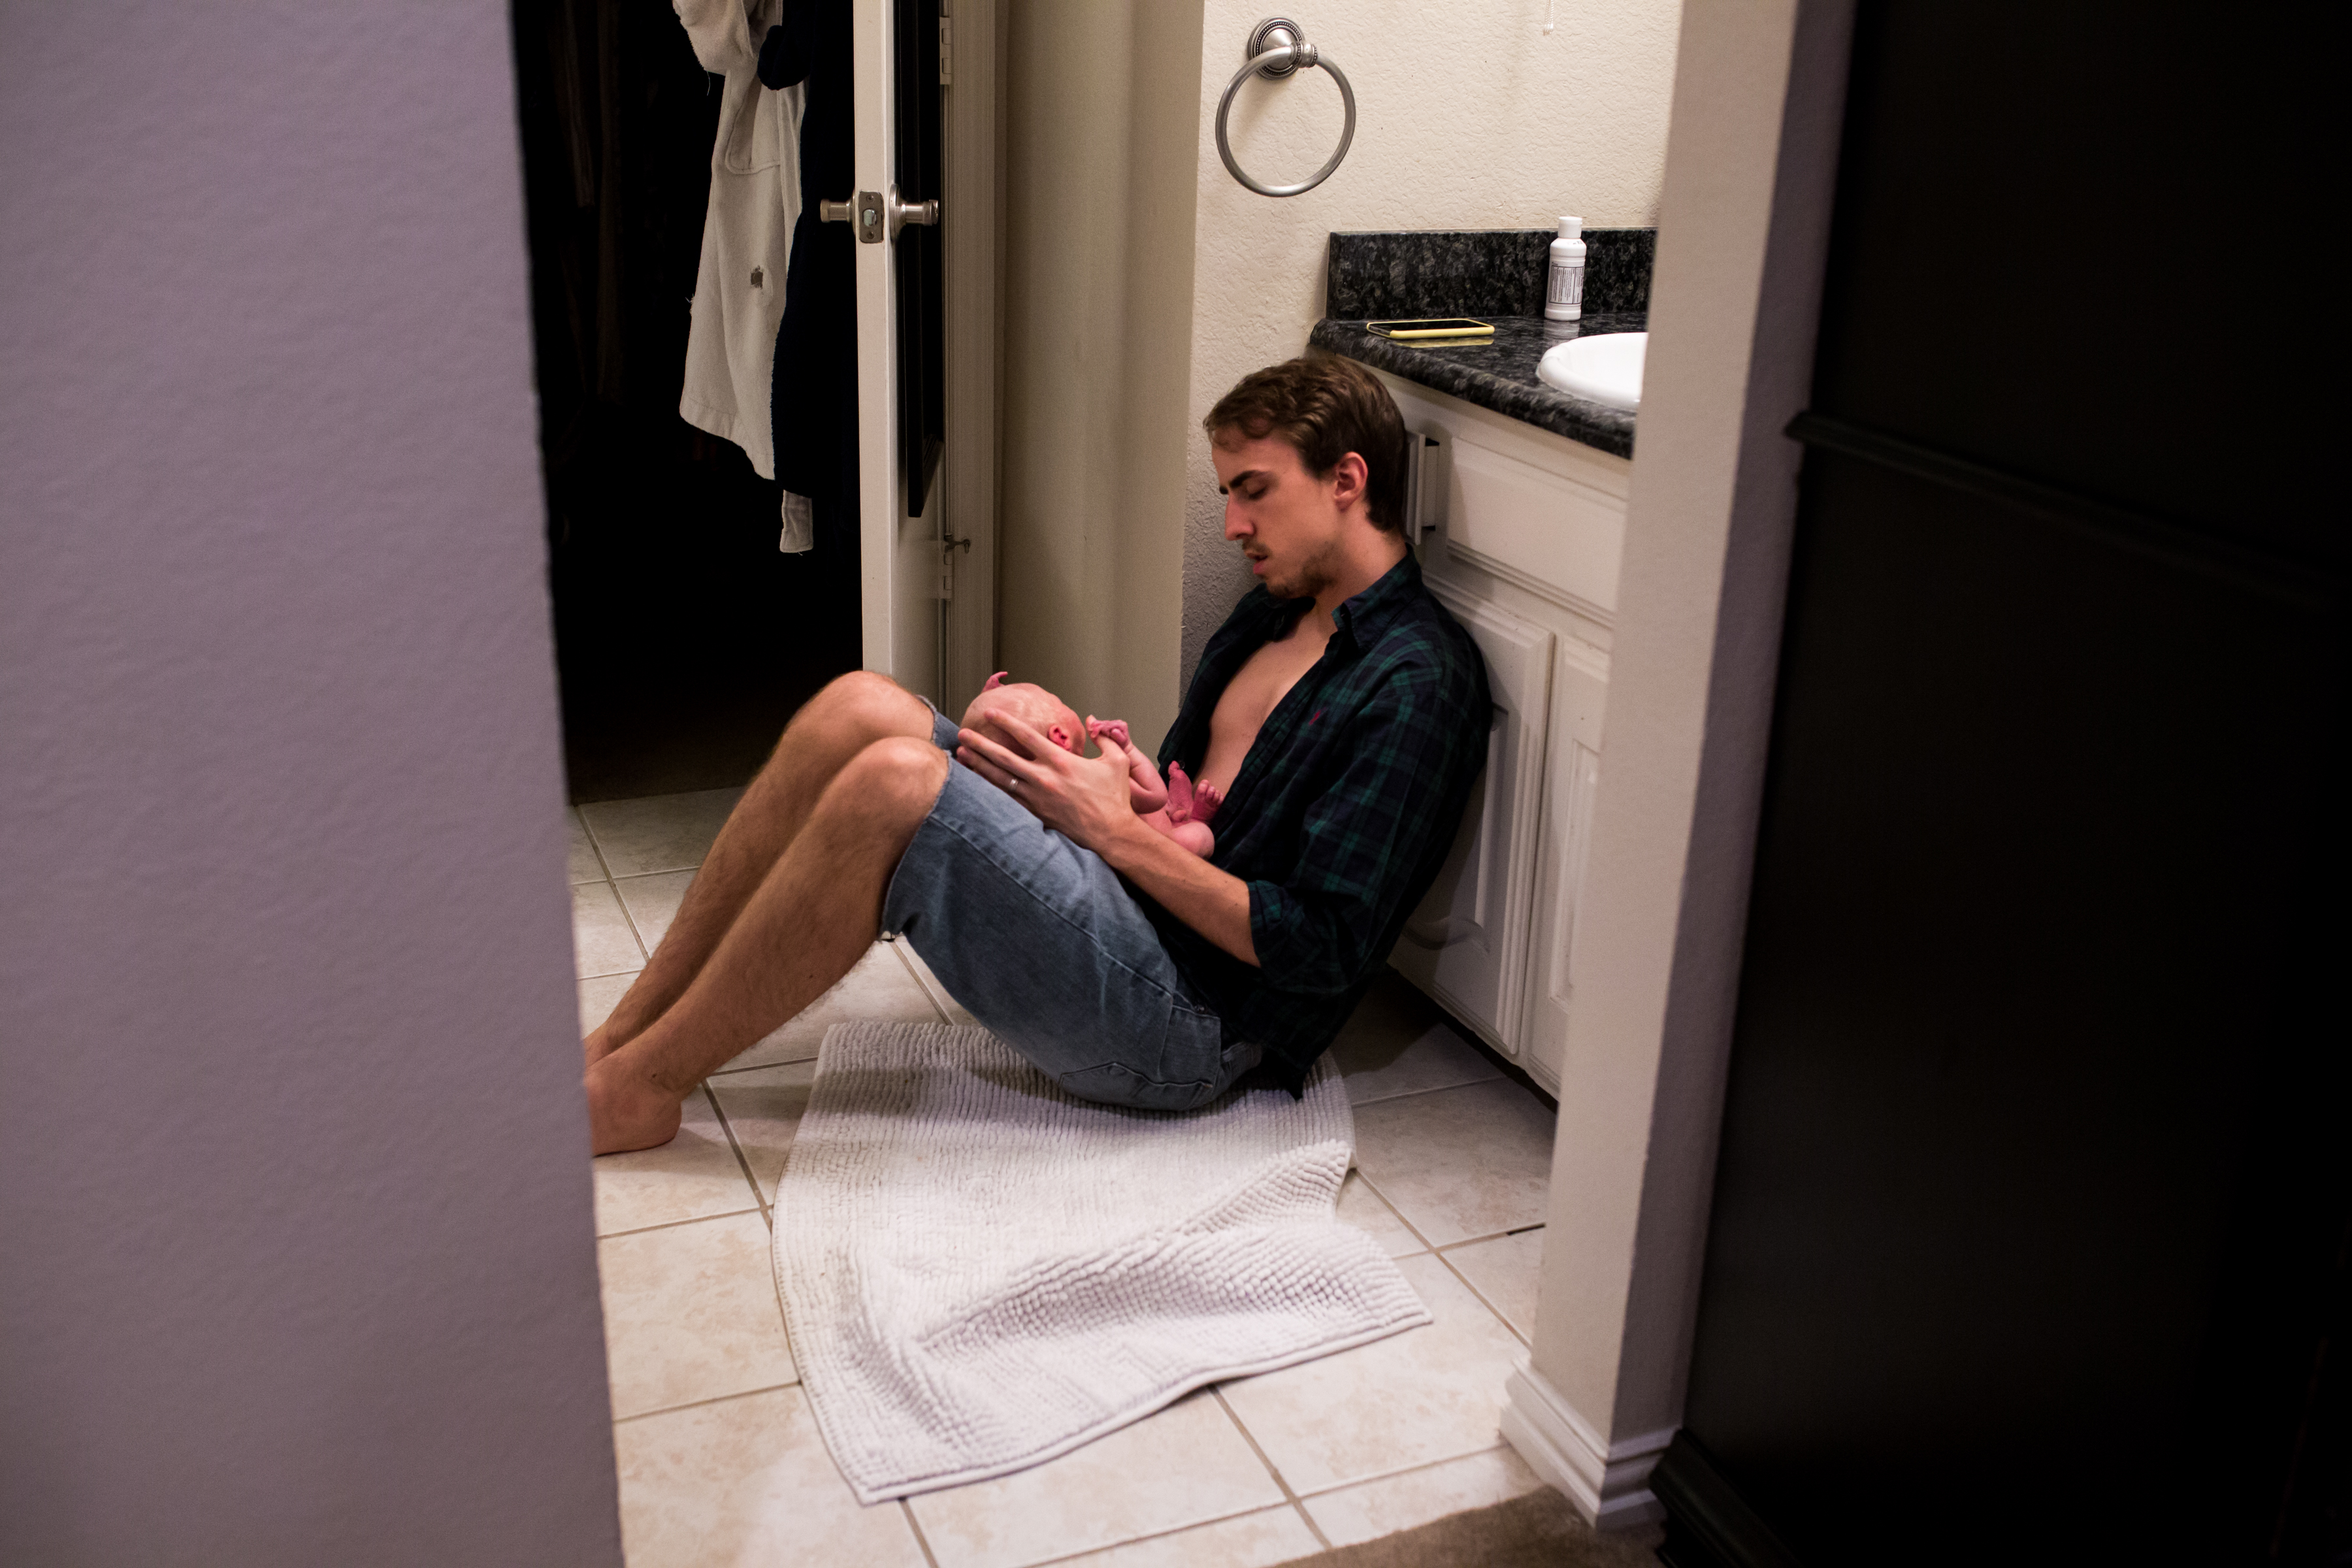 Lawren Rose Photography sneaks a sweet photograph of a dad sitting on the bathroom floor holding his newborn son on his knees as he admires his bundle of joy during a family photography session in farmers branch, texas